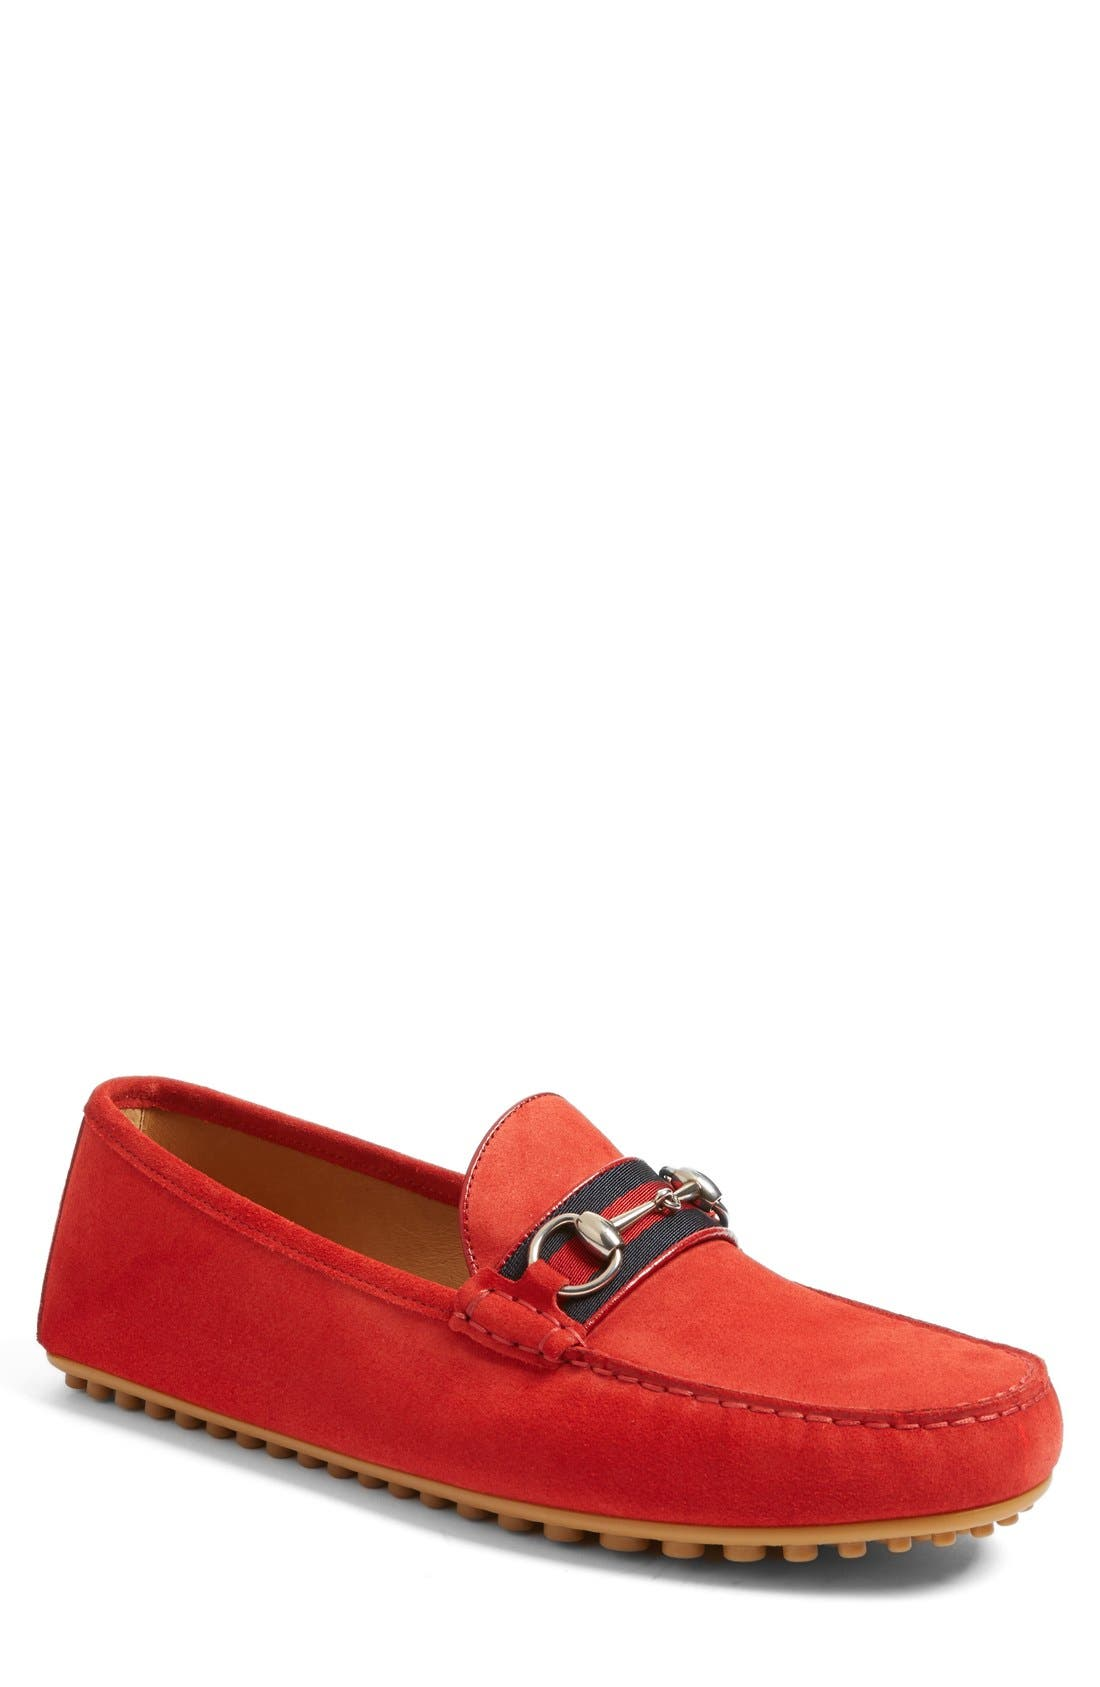 Kanye Bit Loafer,                         Main,                         color, Ruby Suede